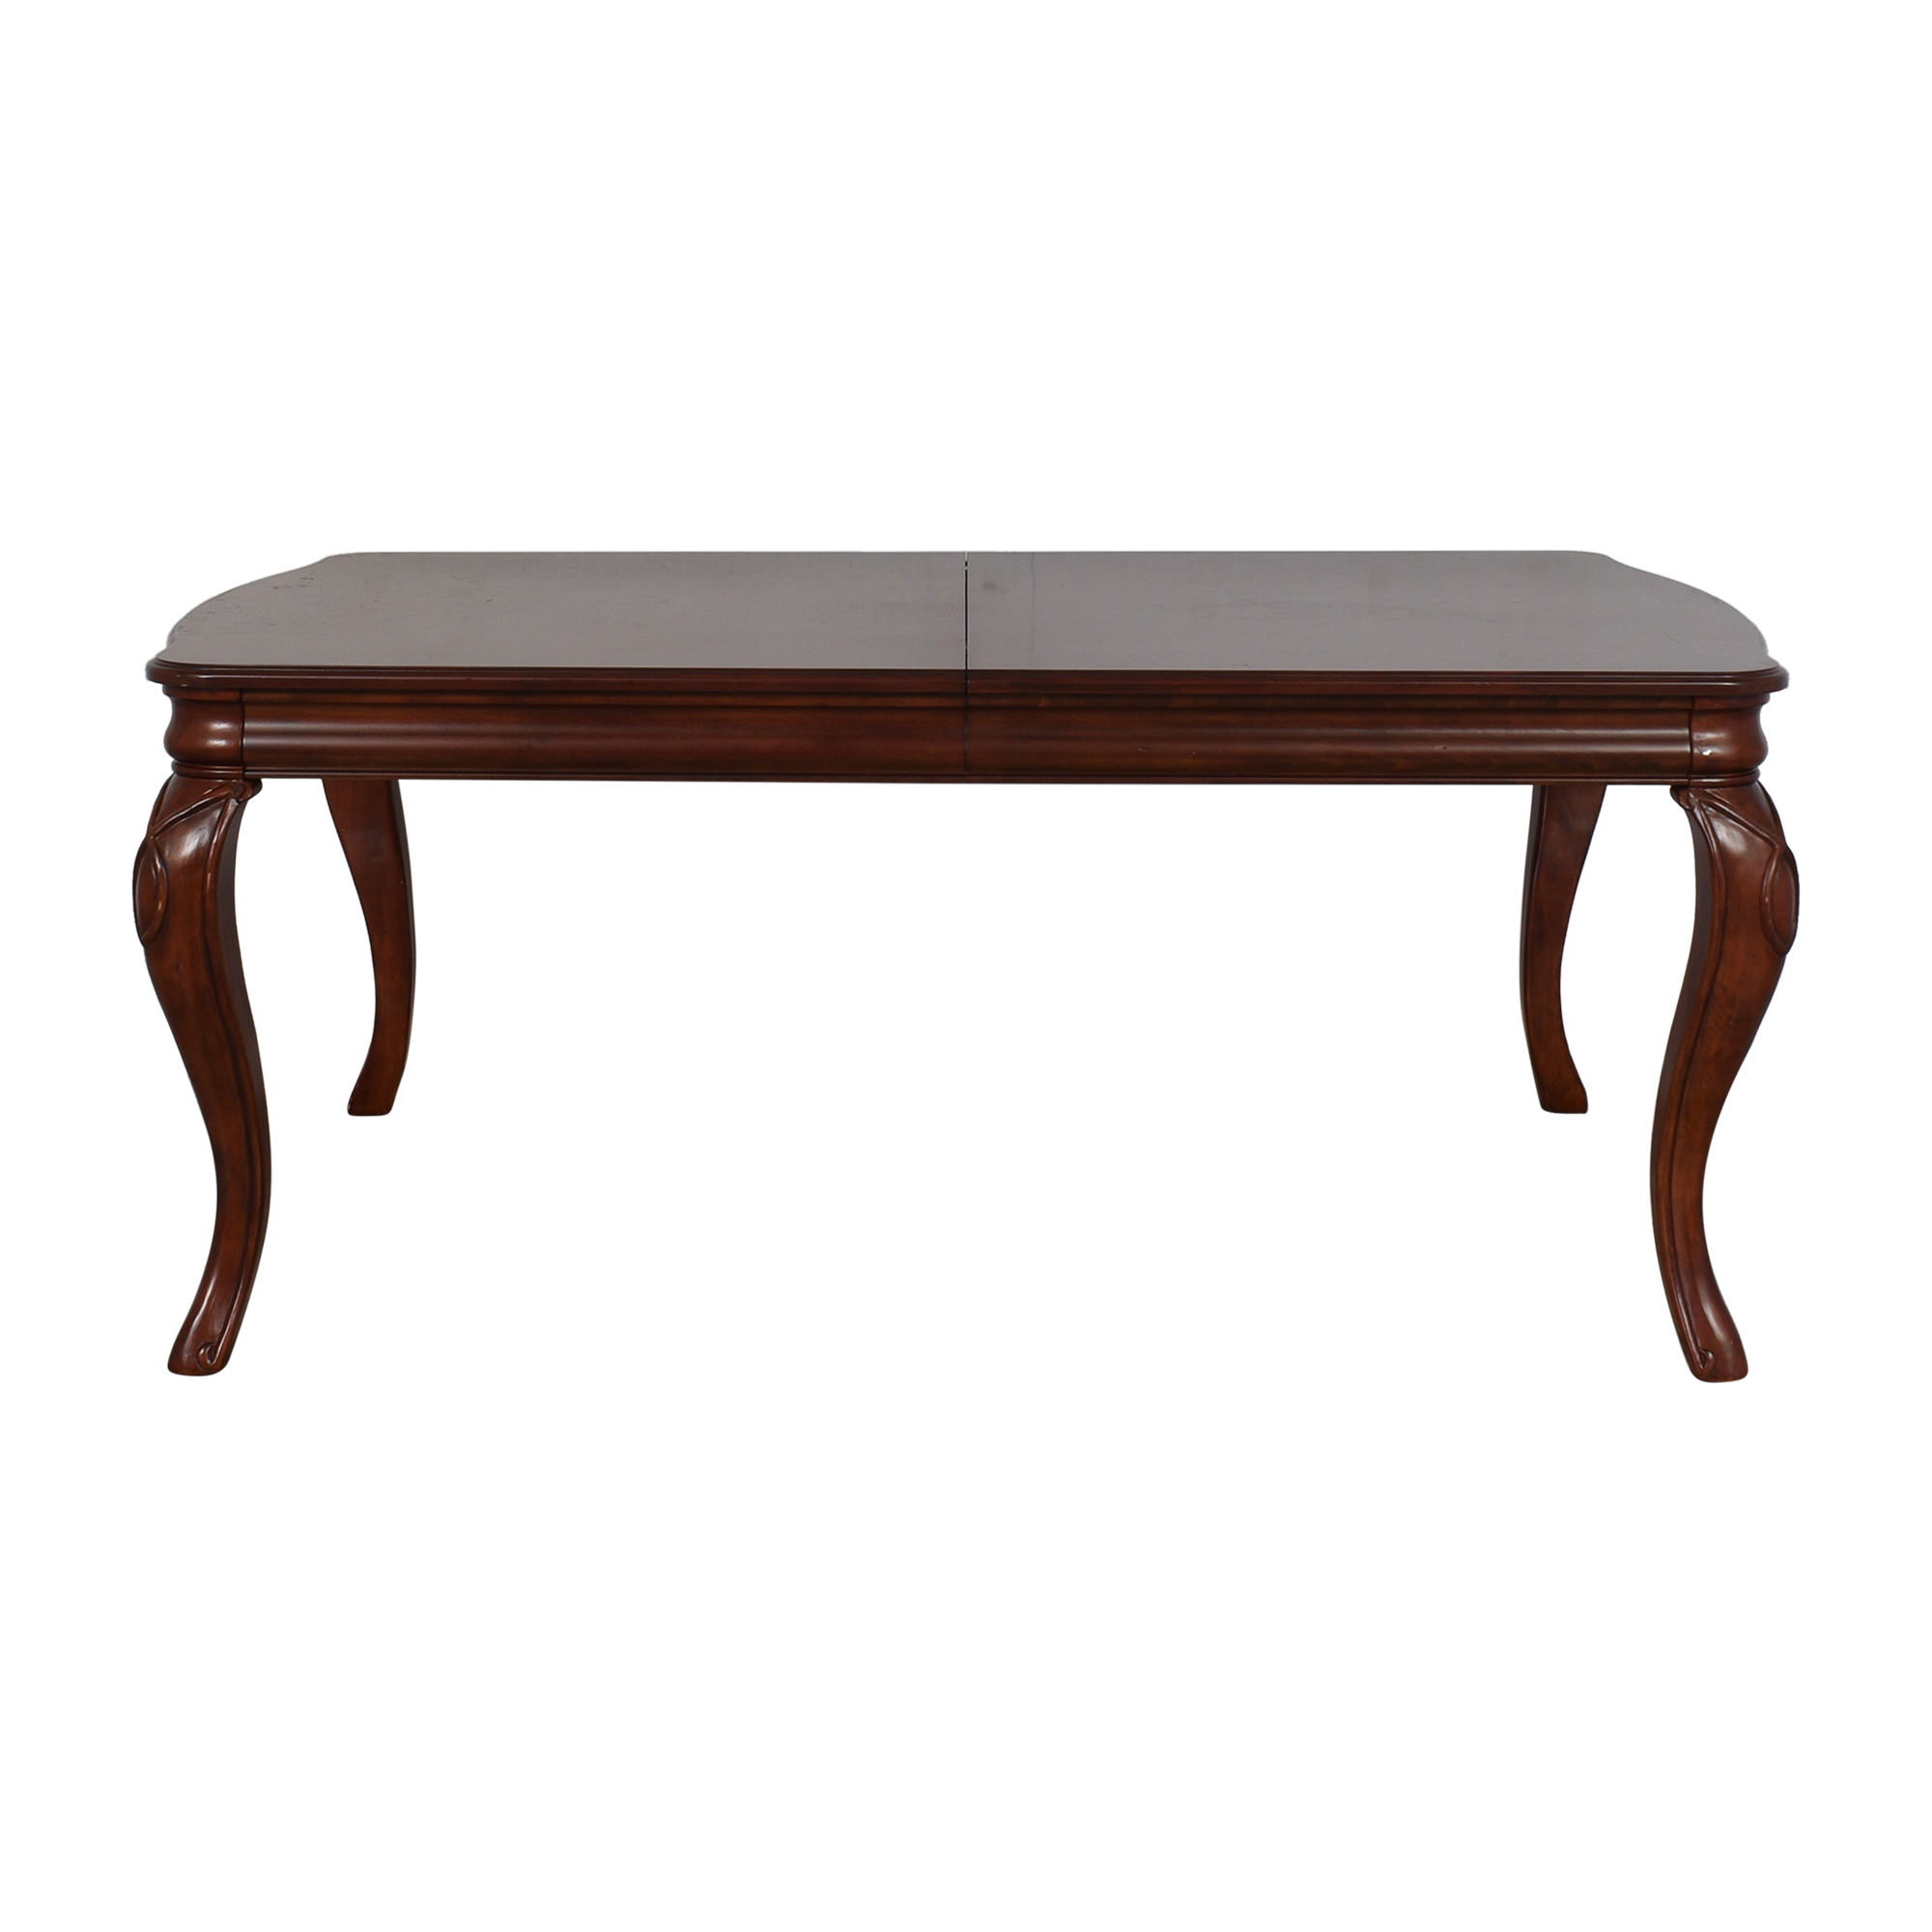 Macy's Macy's Bordeaux II Dining Table on sale